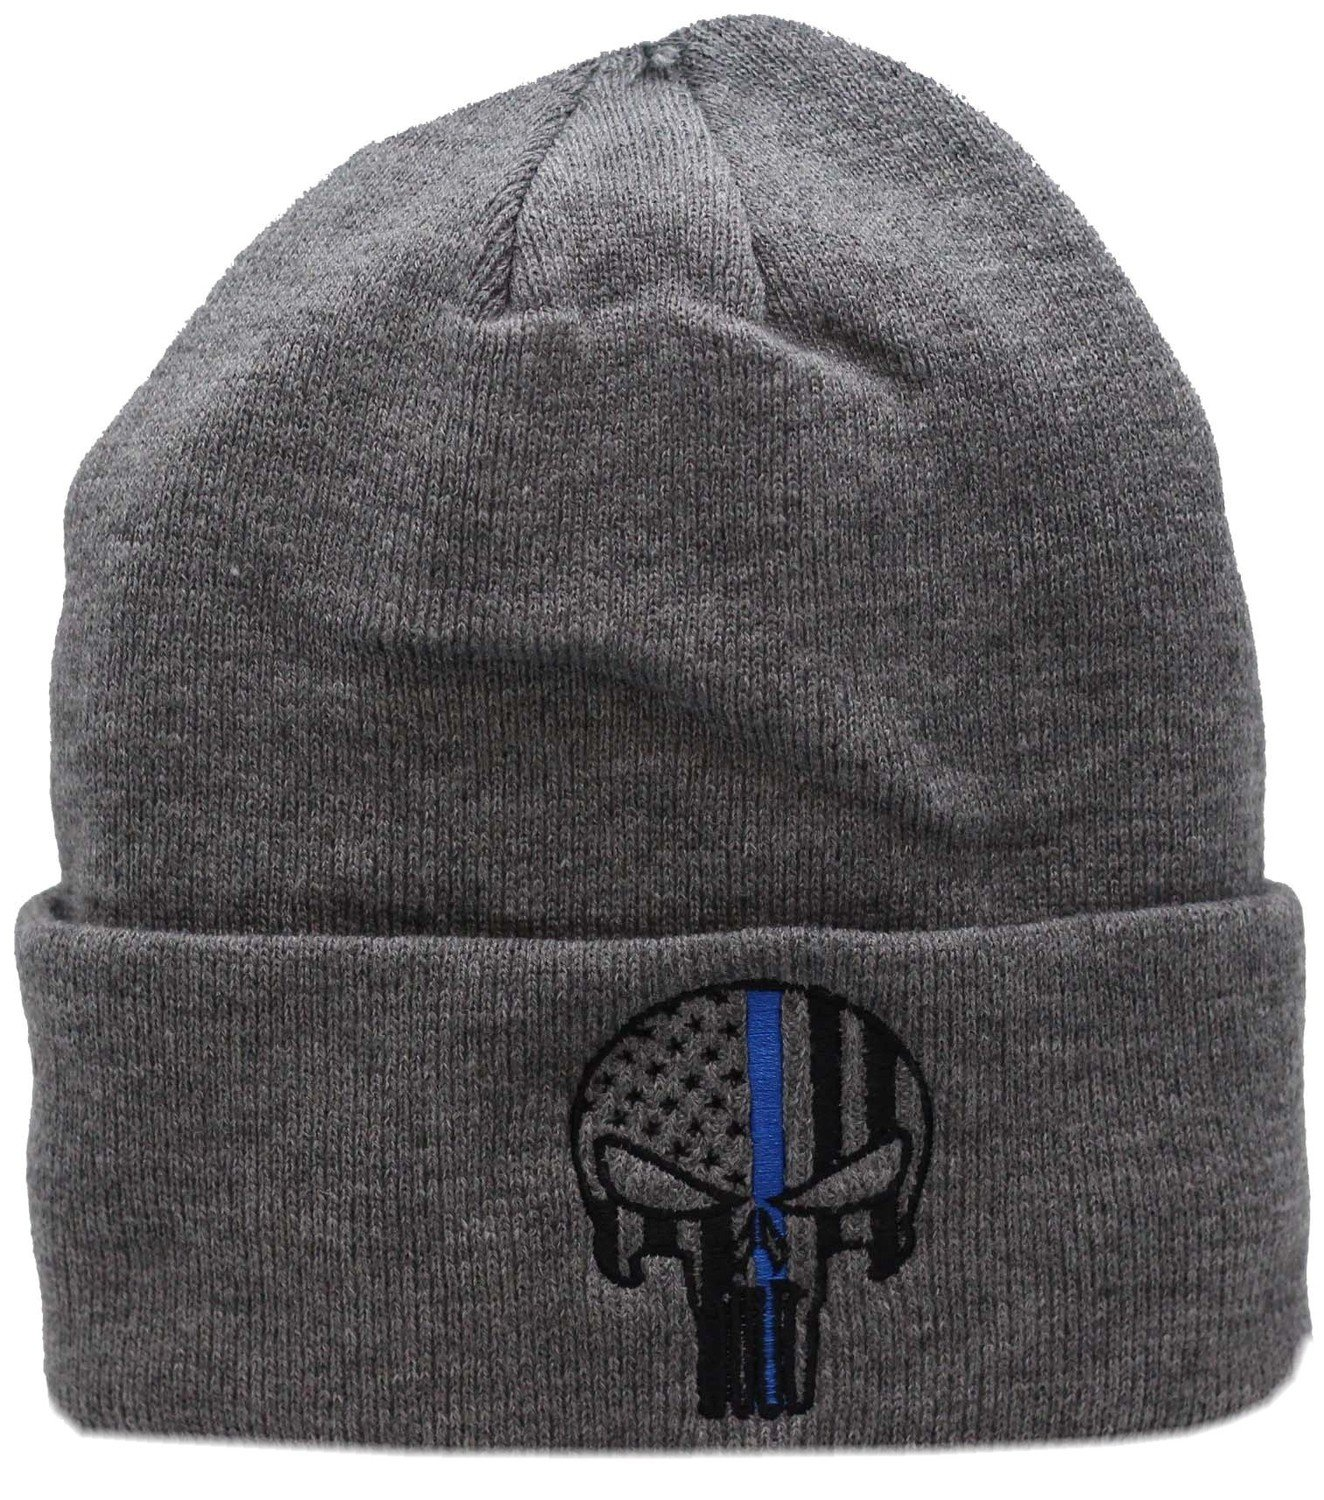 Punisher Blue Line Cuffed Knit Grey